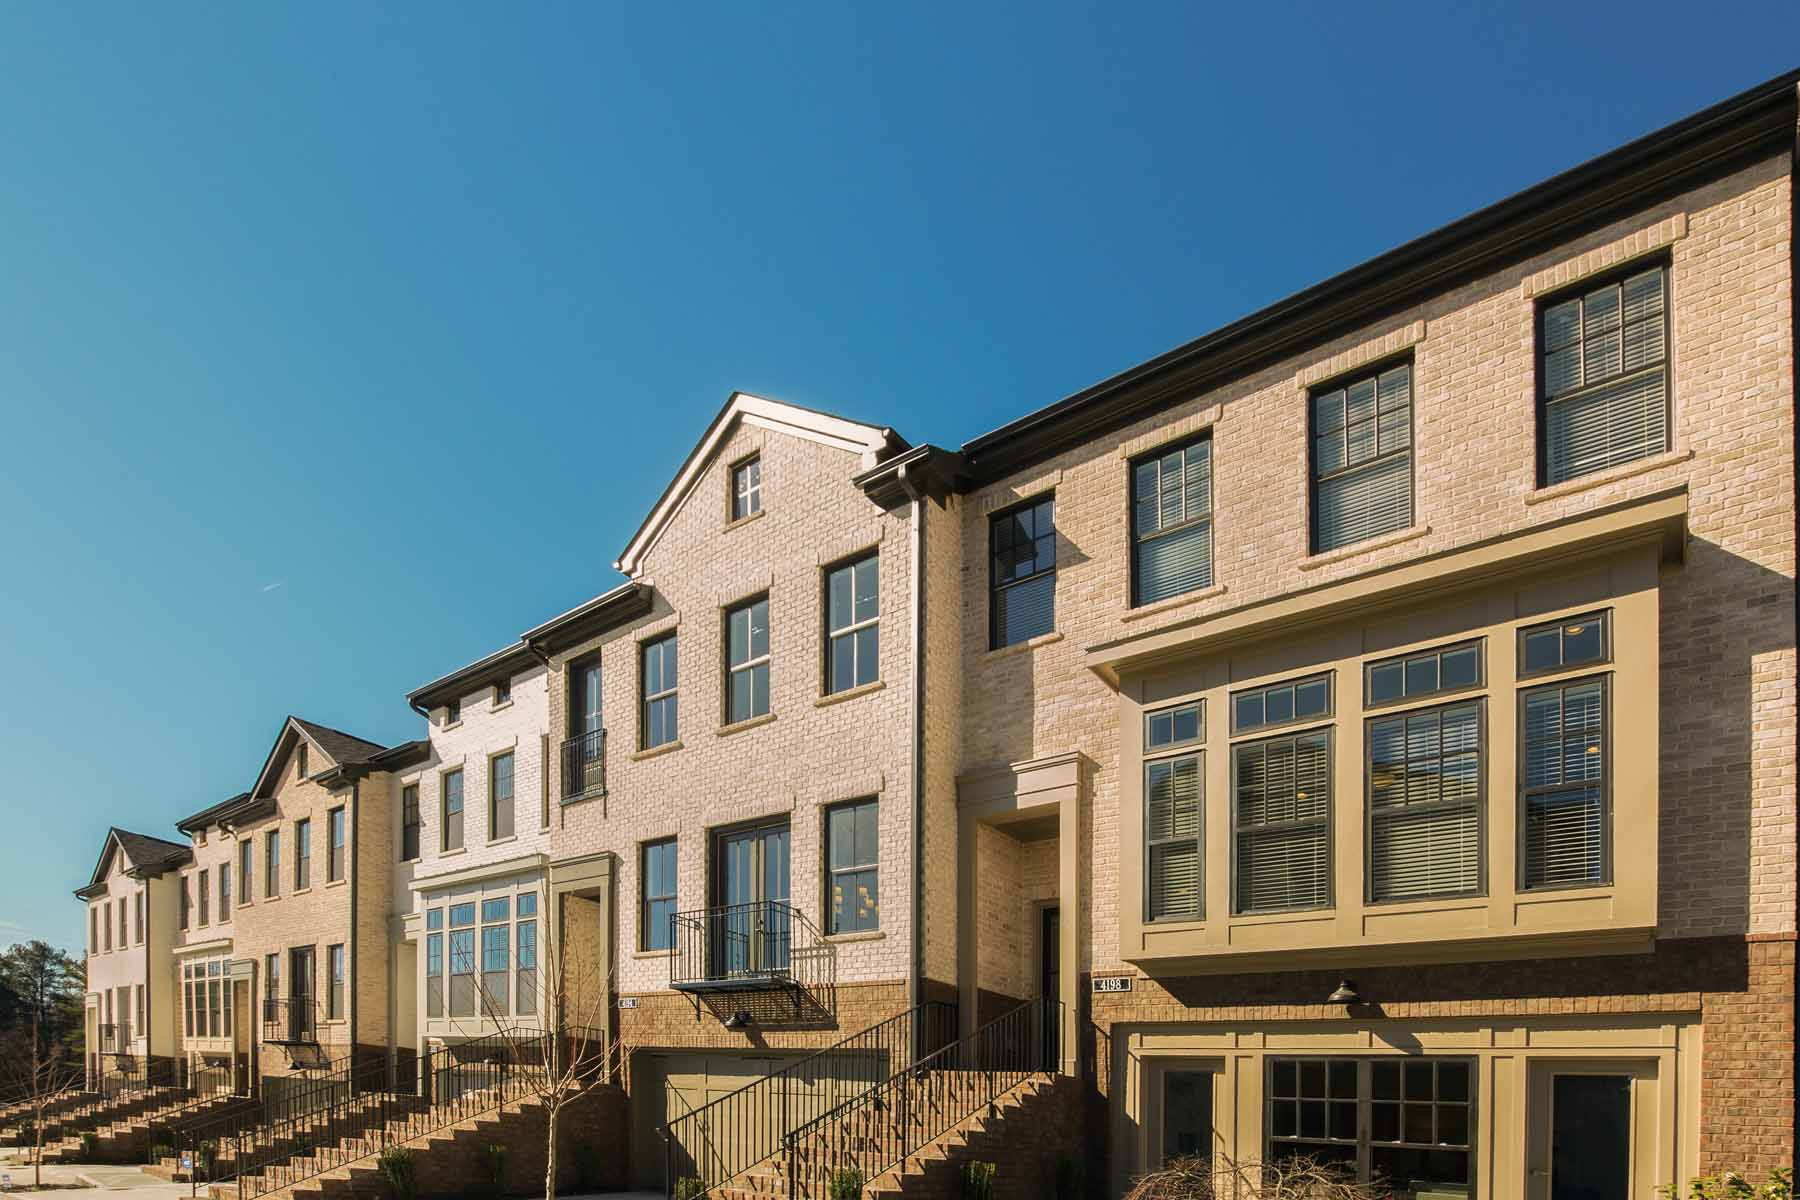 Single Family Home for Sale at New Construction in the Heart of Dunwoody 4330 Georgetown Square Unit 8 Dunwoody, Georgia, 30338 United States